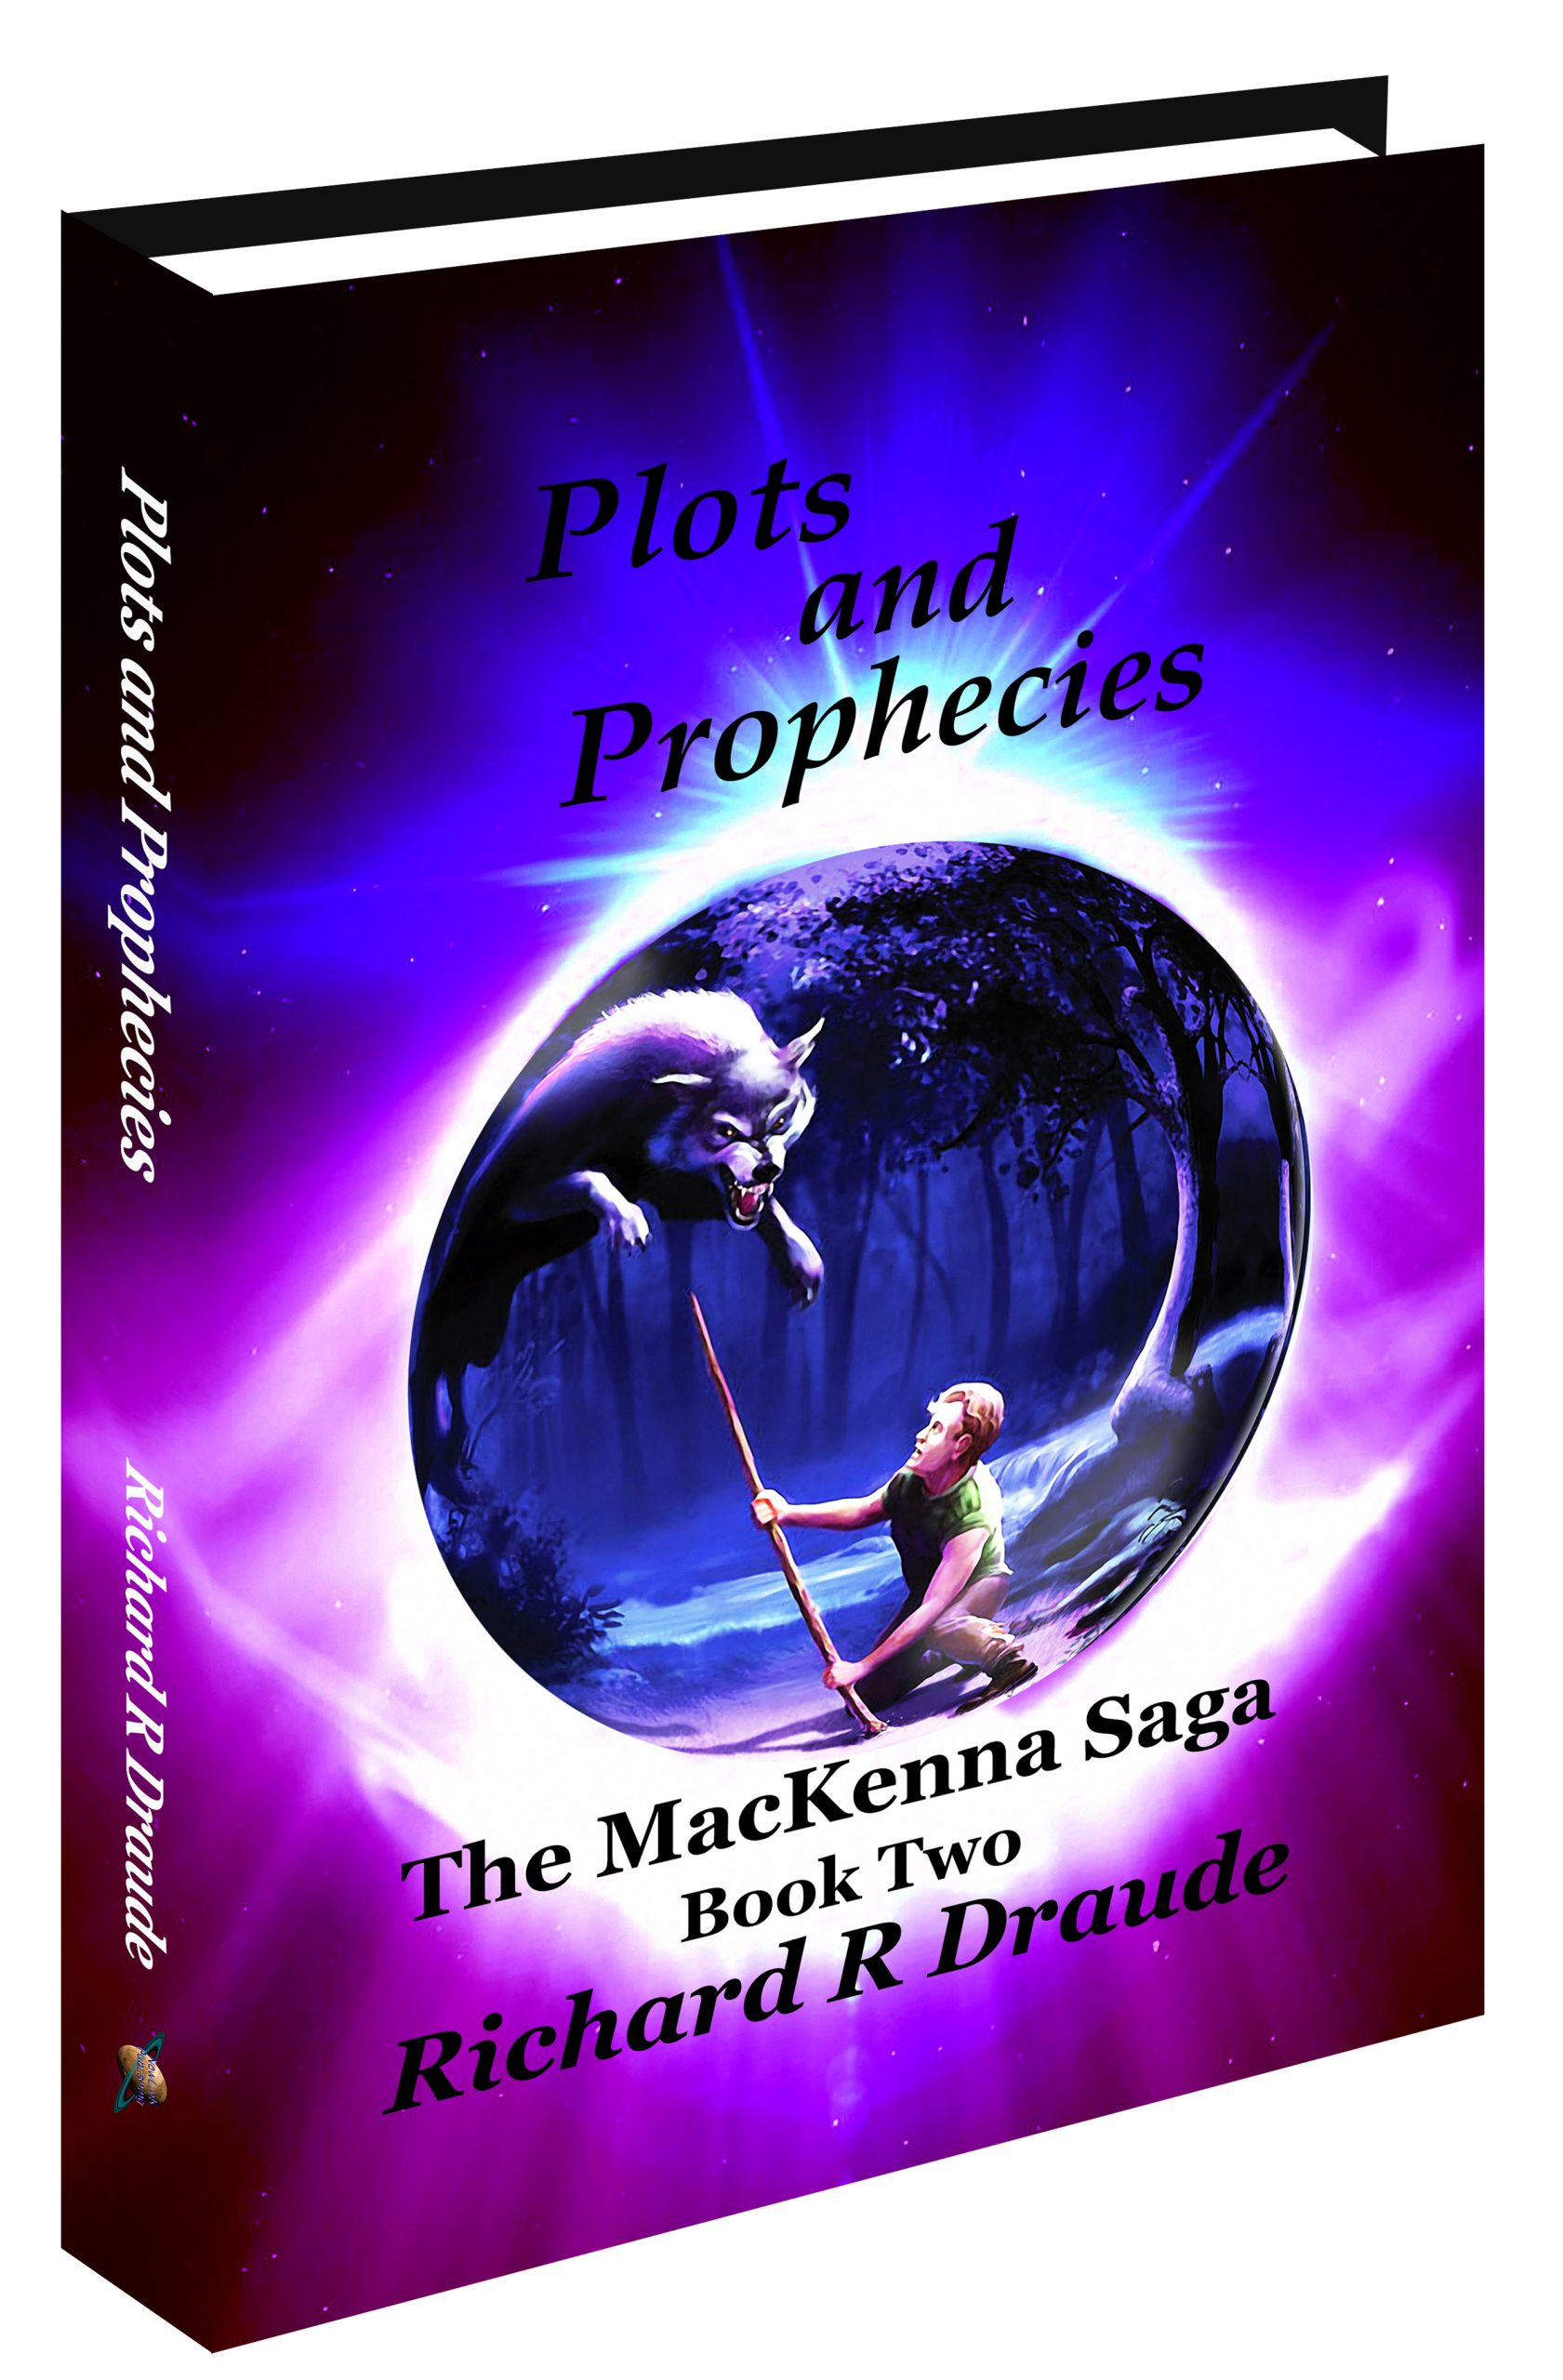 <b><i>Plots and Prophecies</i></b> The MacKenna Saga Book Two